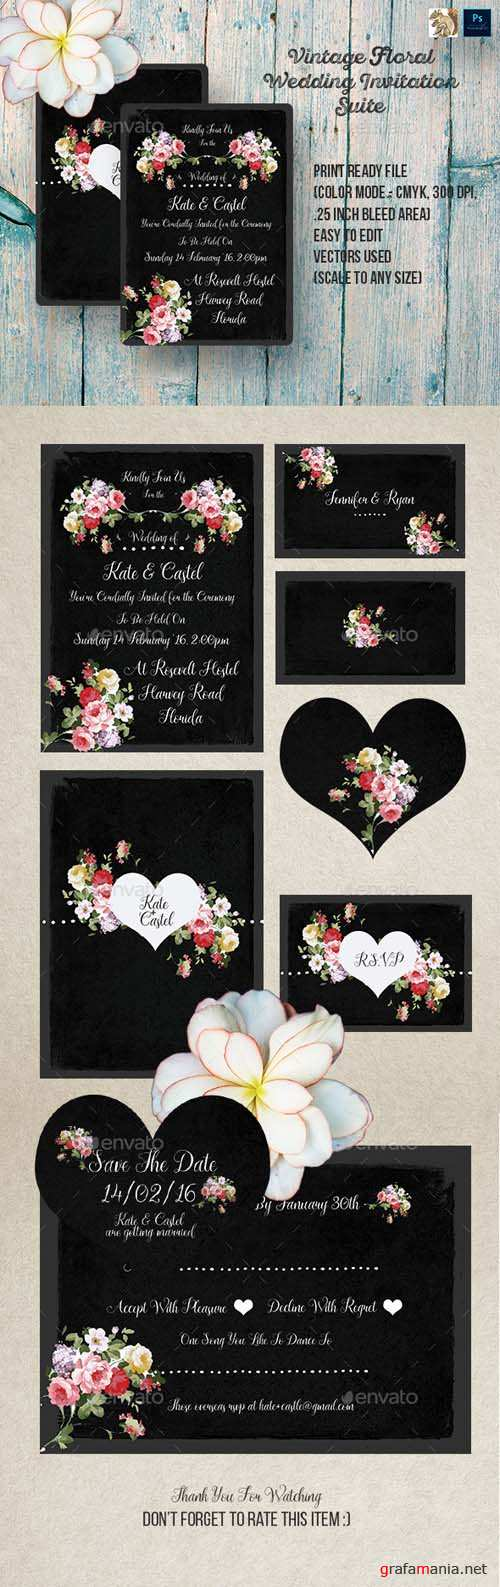 Vintage Floral Wedding Invitation Suite 14447556